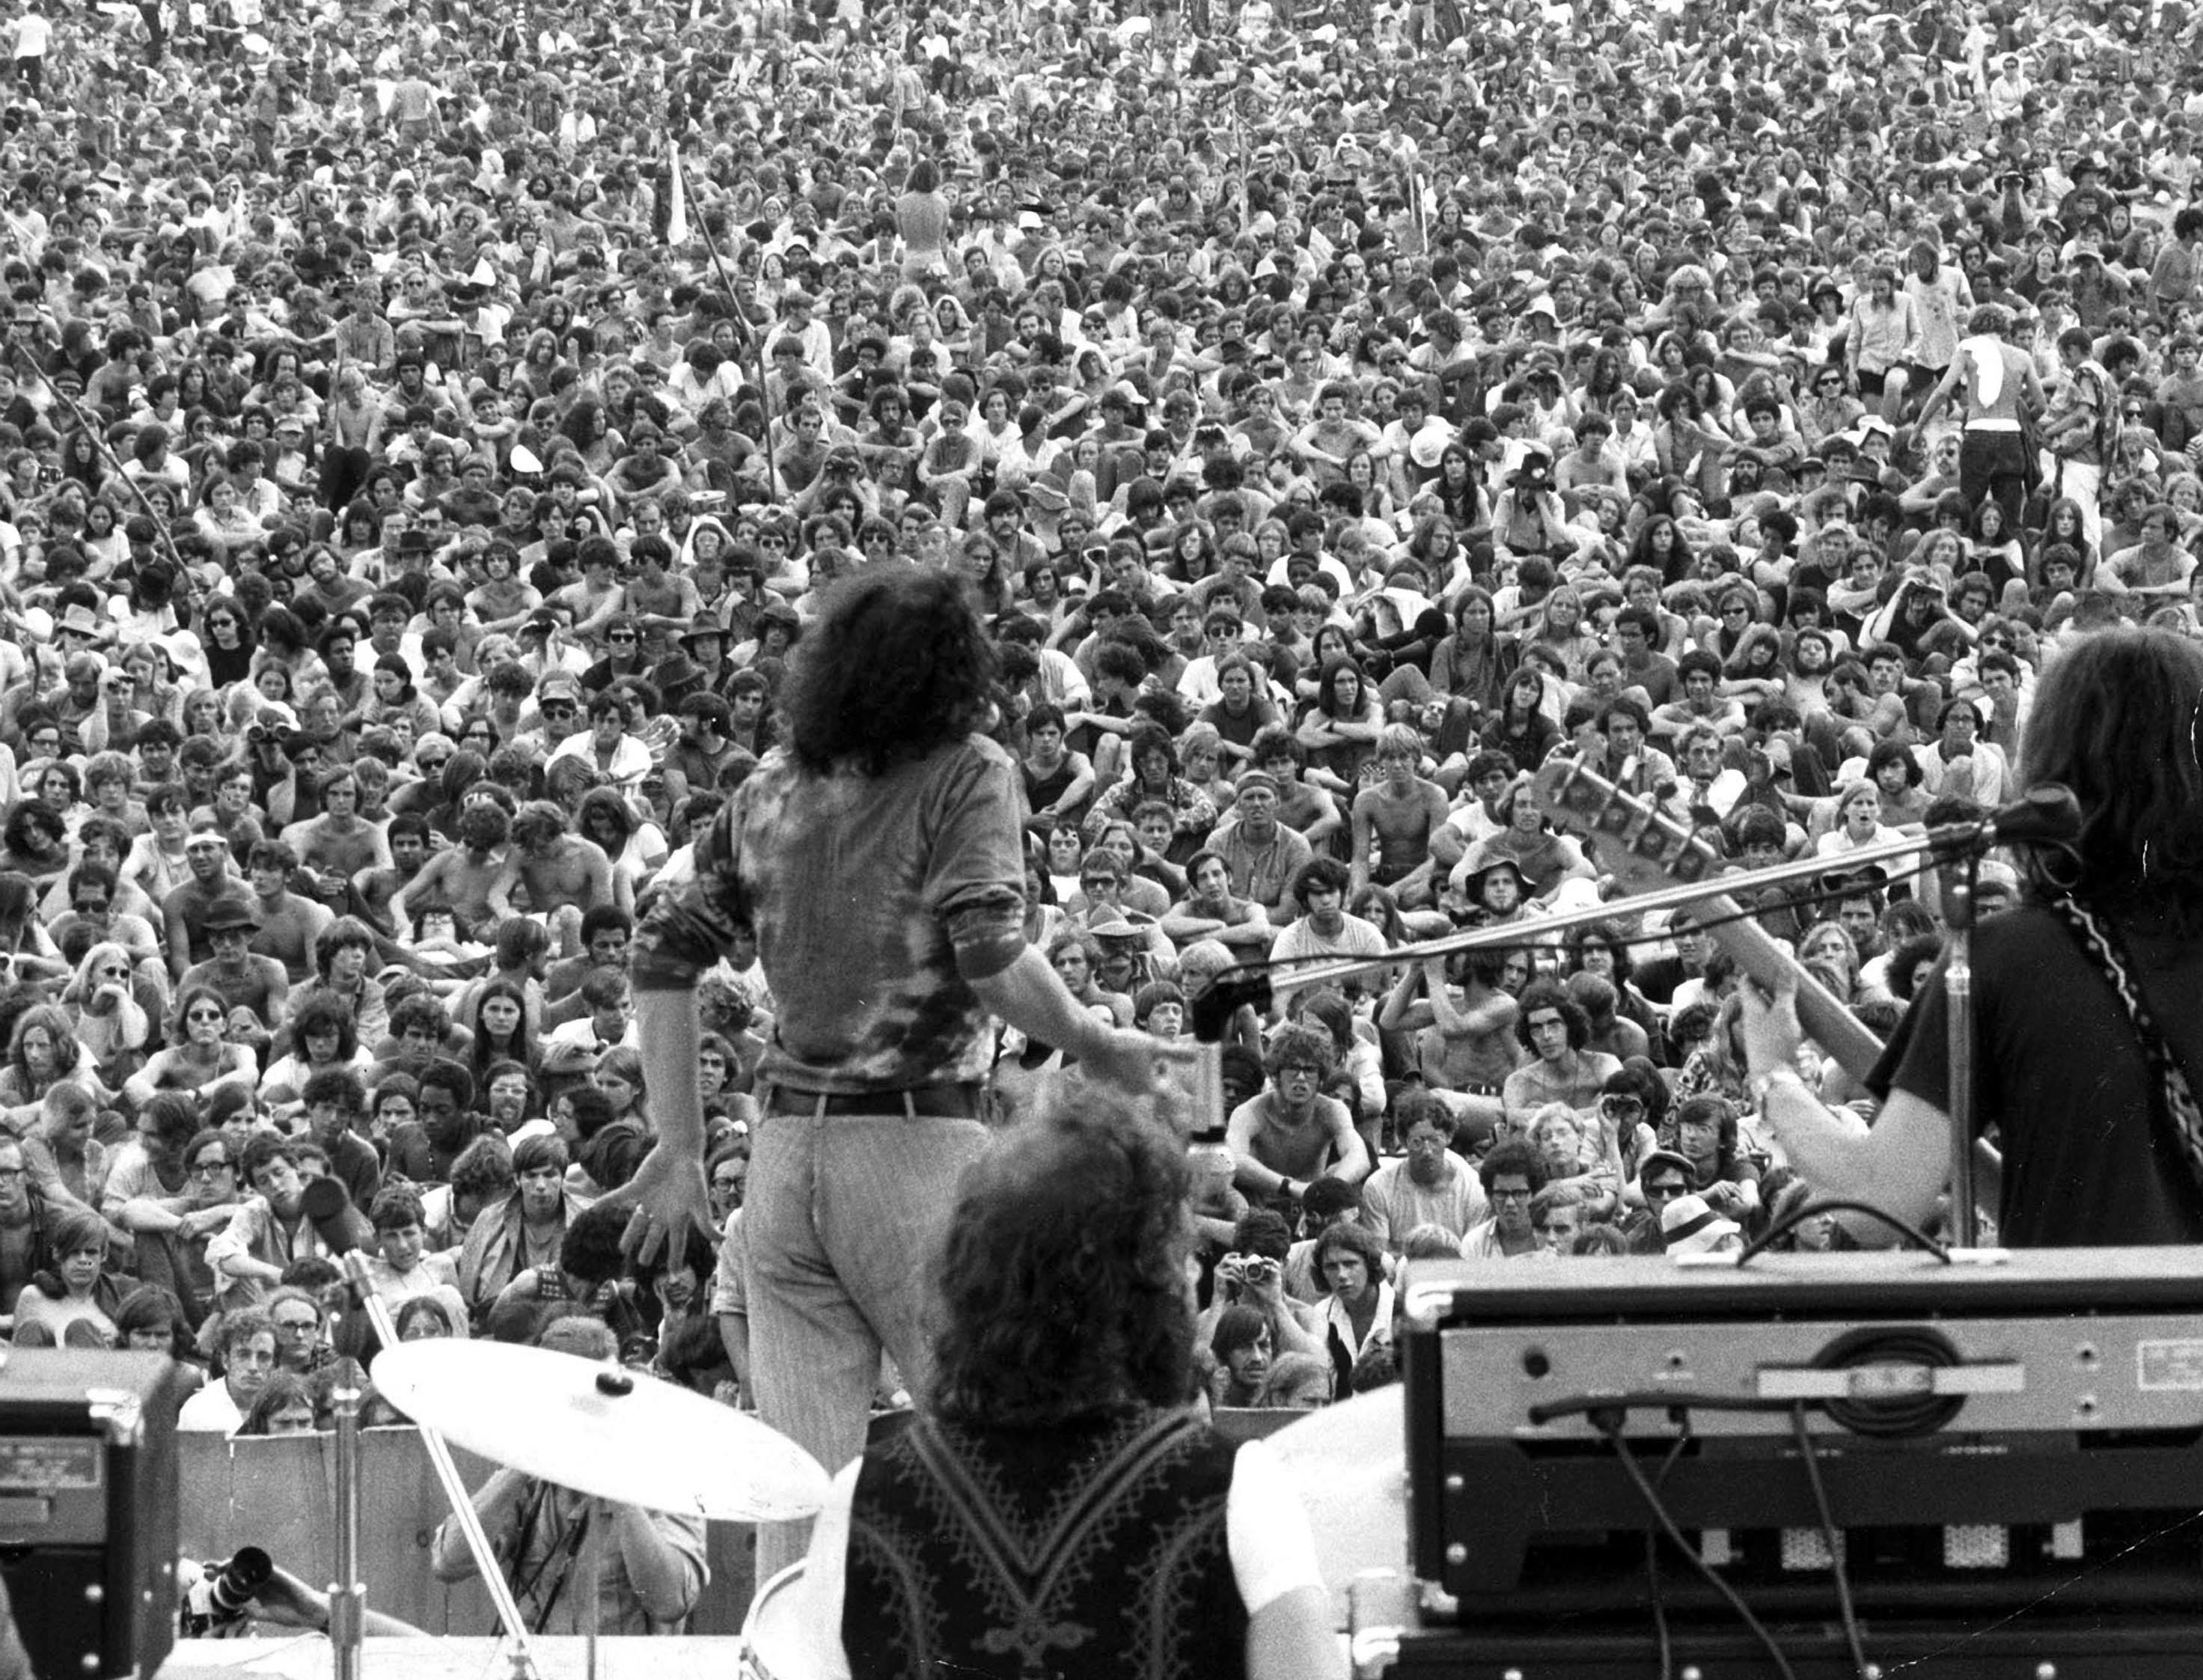 Archaeologists scour Woodstock 1969 concert field - The